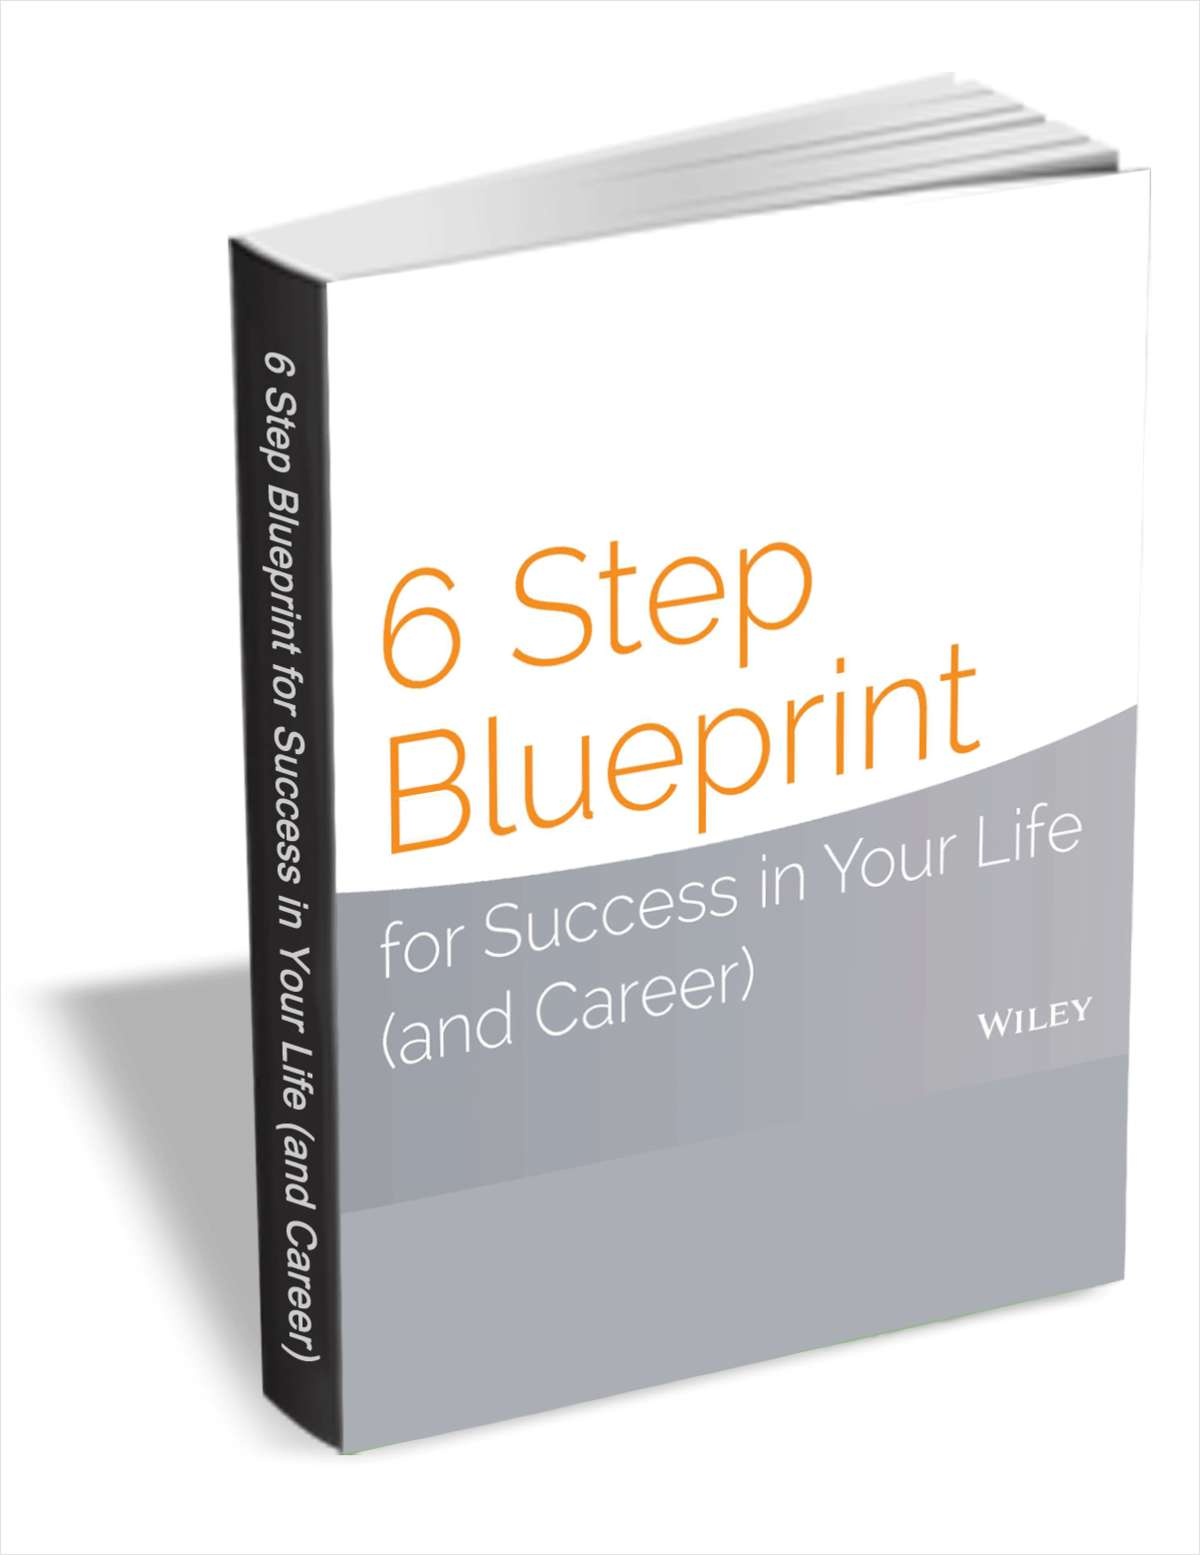 6 step blueprint for success in your life and career free wiley guide 6 step blueprint for success in your life and career malvernweather Choice Image